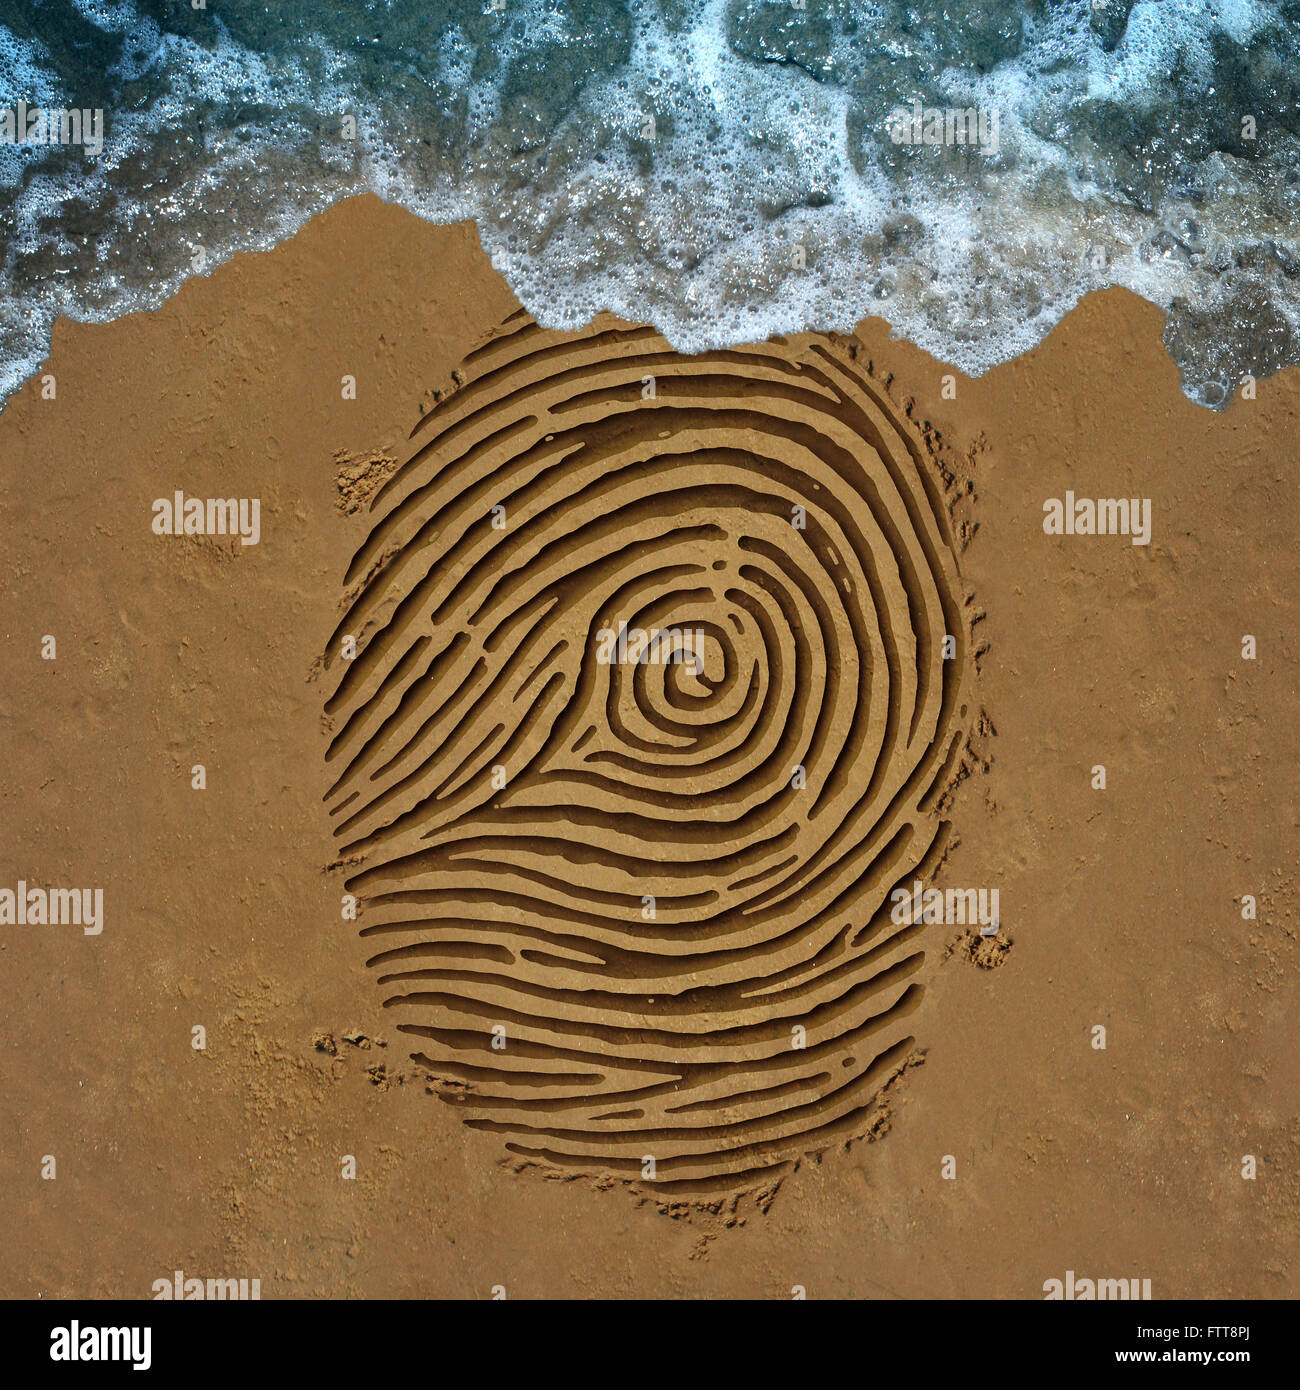 Identity crisis concept as a finger print pattern on beach sand with an ocean wave washing away the information - Stock Image